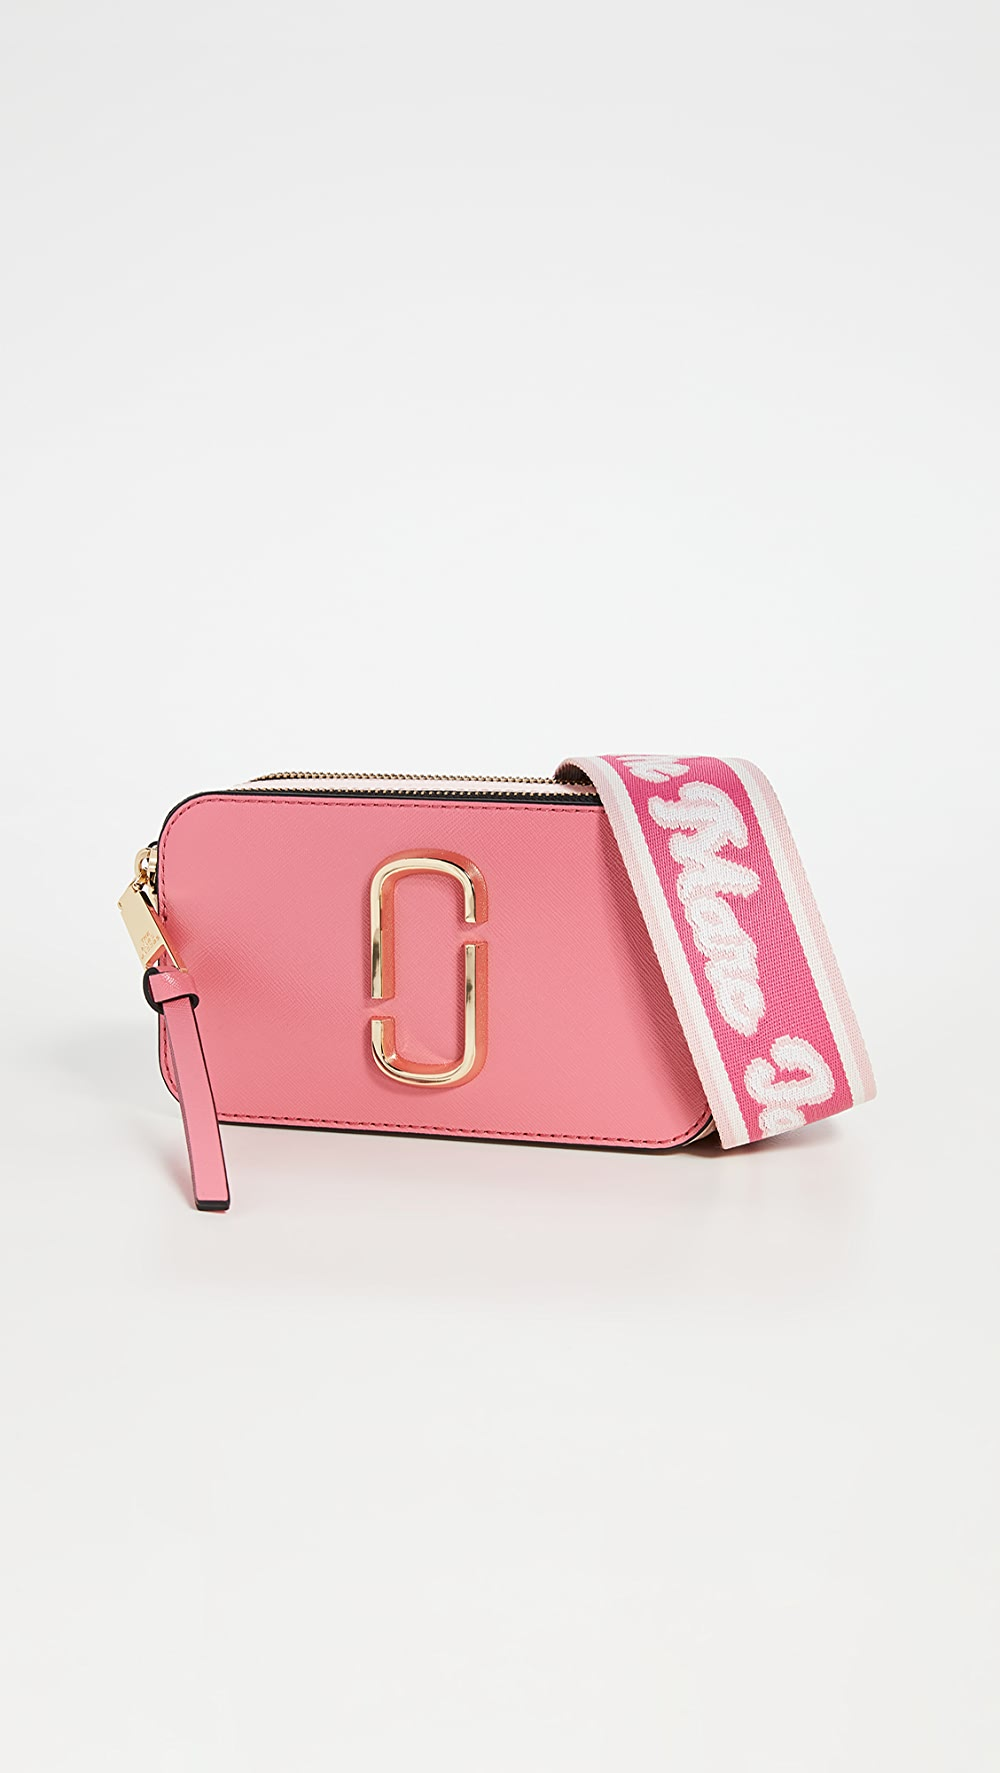 100% Quality The Marc Jacobs - Snapshot Crossbody Bag Removing Obstruction